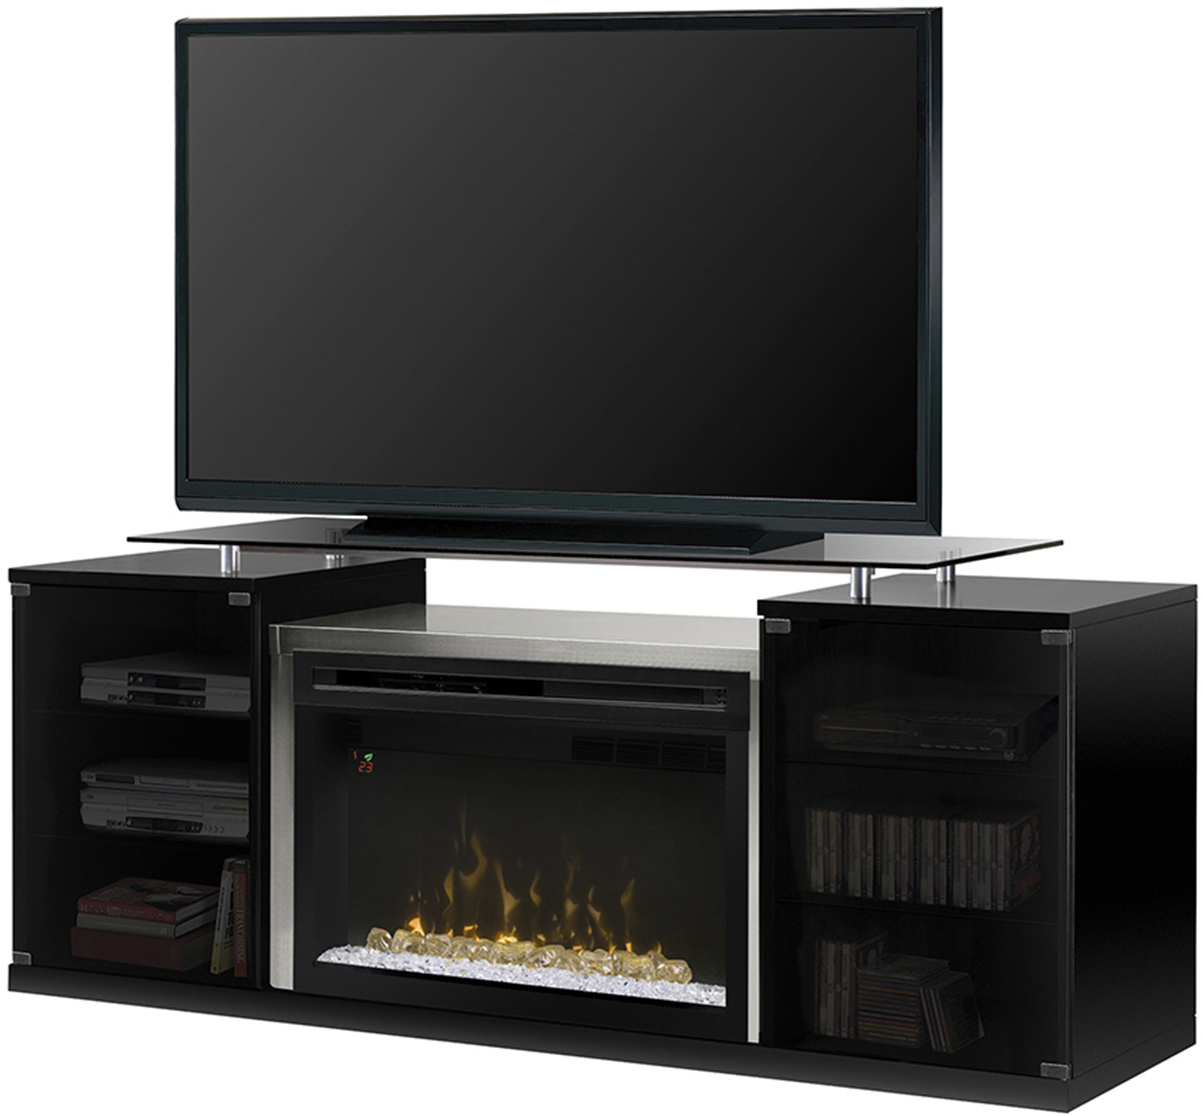 B And Q Gas Fires With Safety Glass